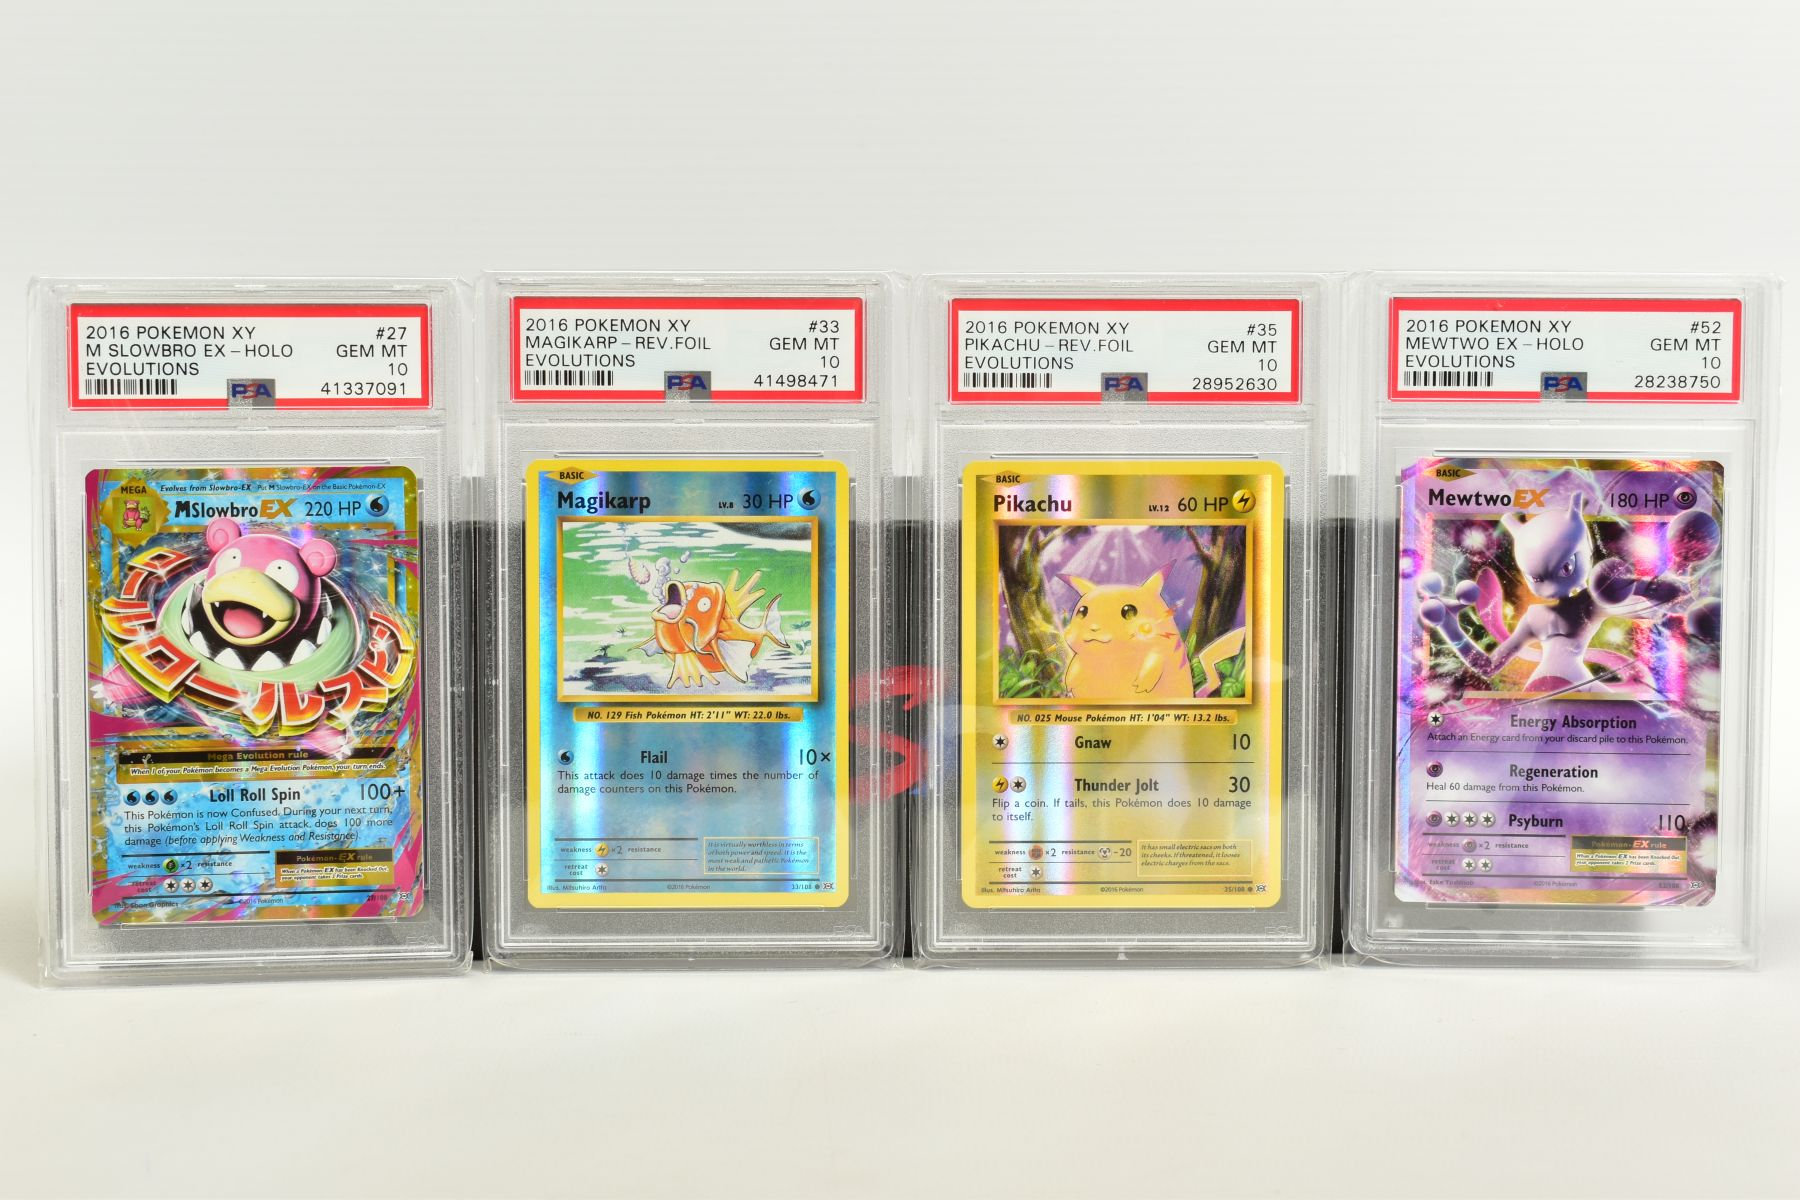 A QUANTITY OF PSA GRADED POKEMON XY EVOLUTIONS SET CARDS, all are graded GEM MINT 10 and are - Image 4 of 10